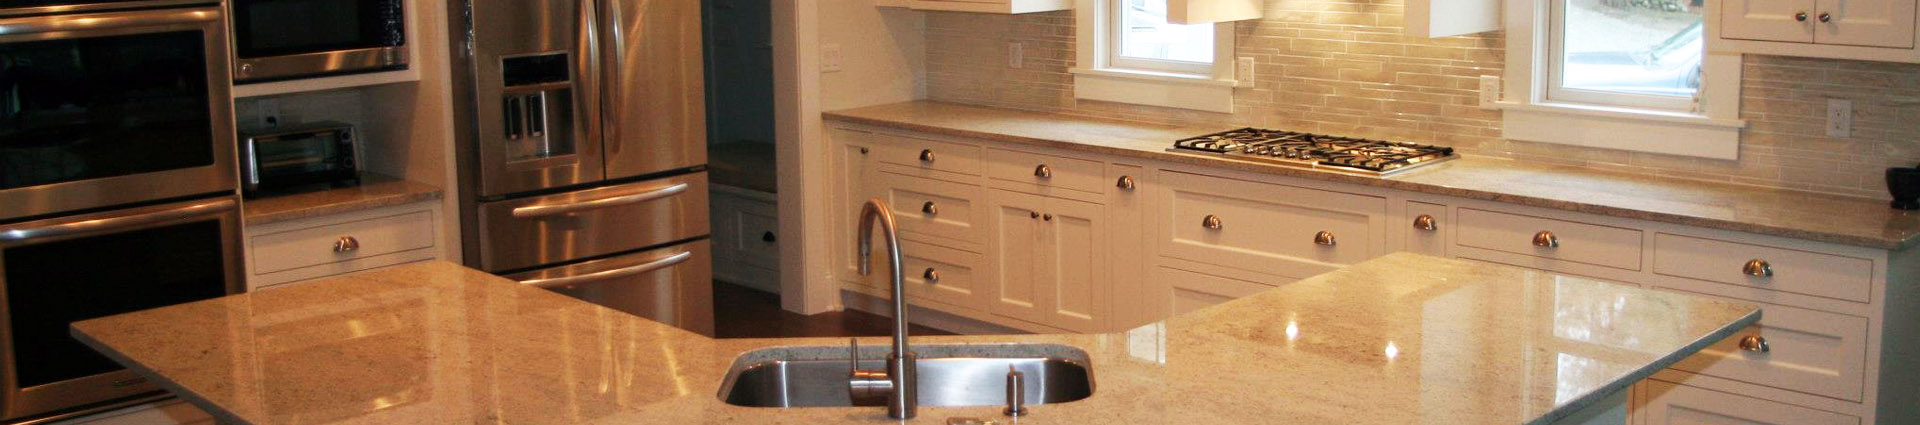 Bathroom Remodeling Lehigh Valley Pa : Laslo kitchens cabinets bathrooms lehigh valley easton